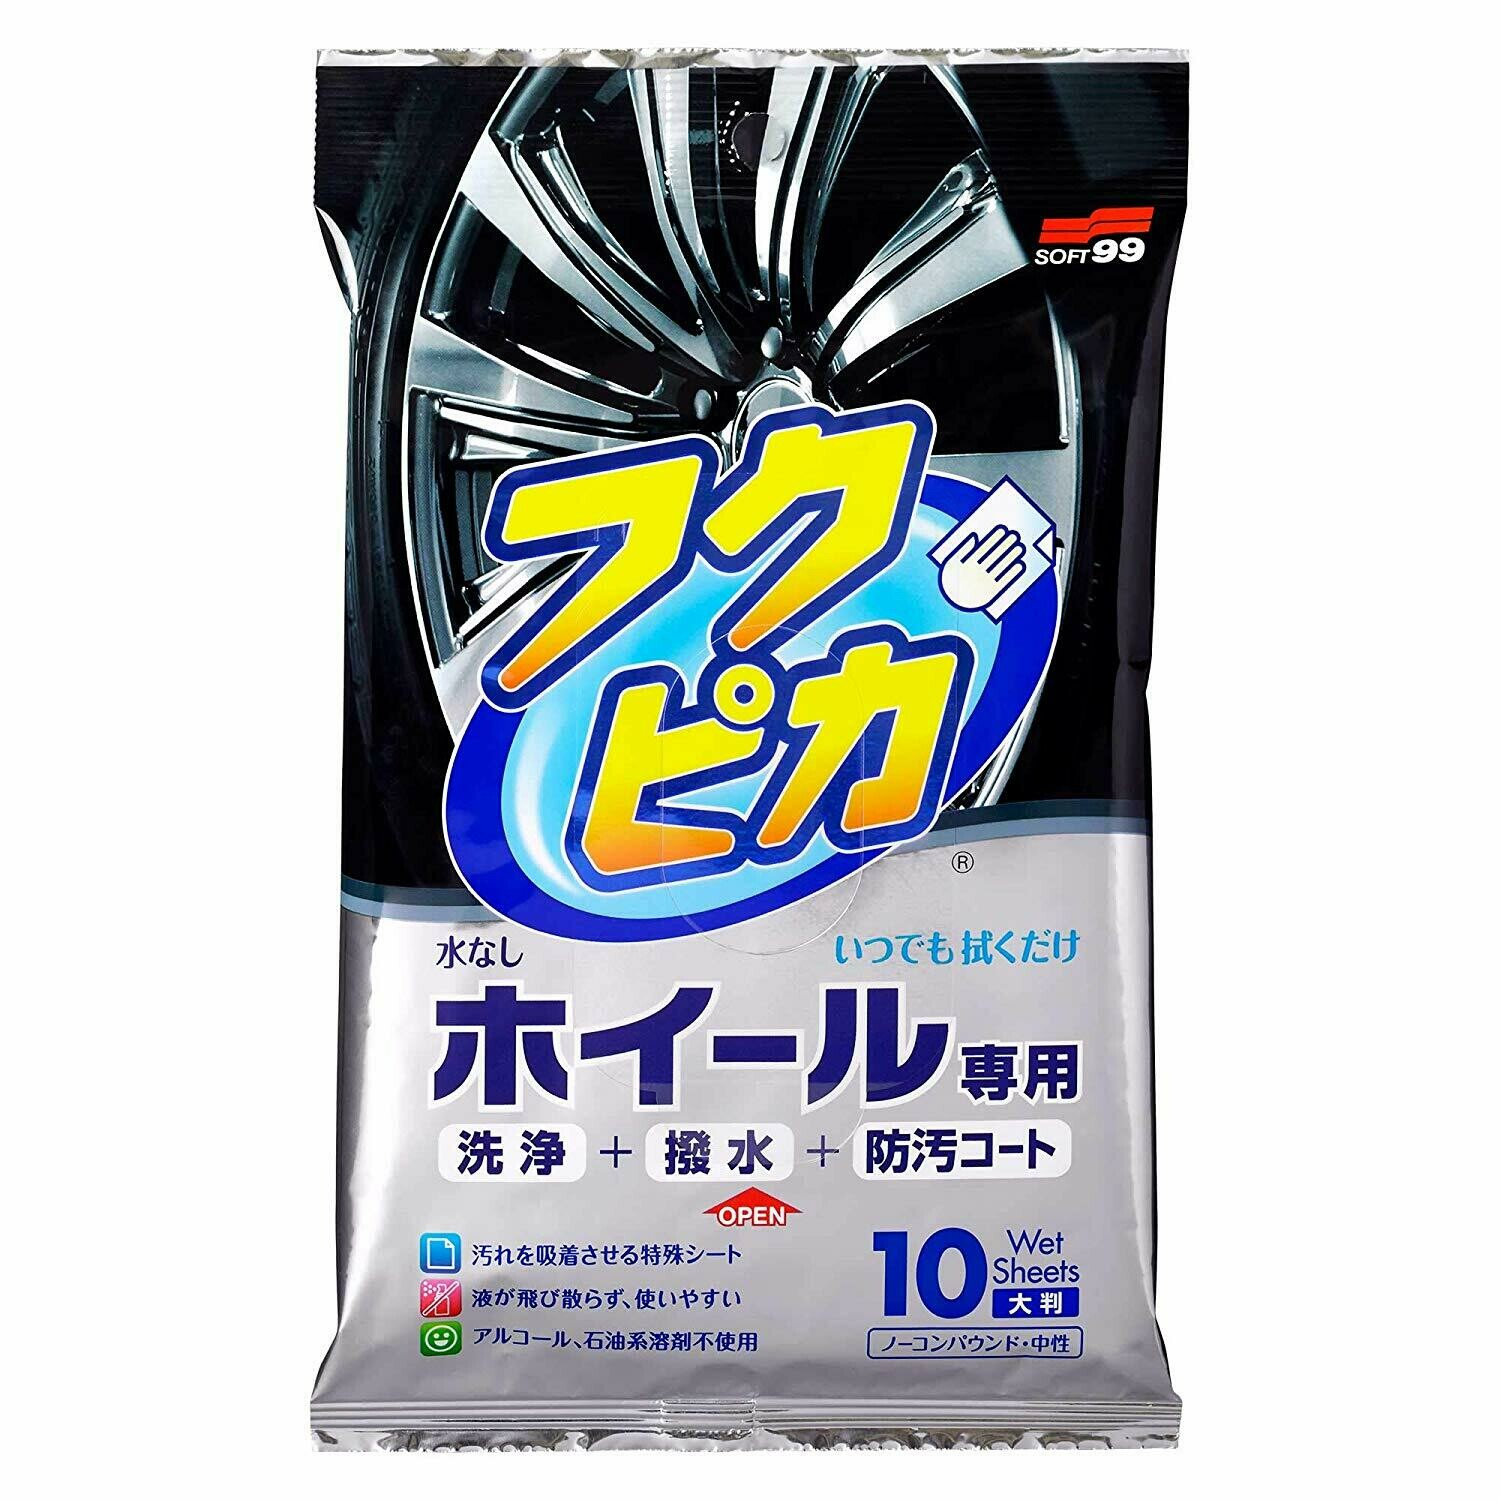 Soft99 Wheel Cleaning Wipe